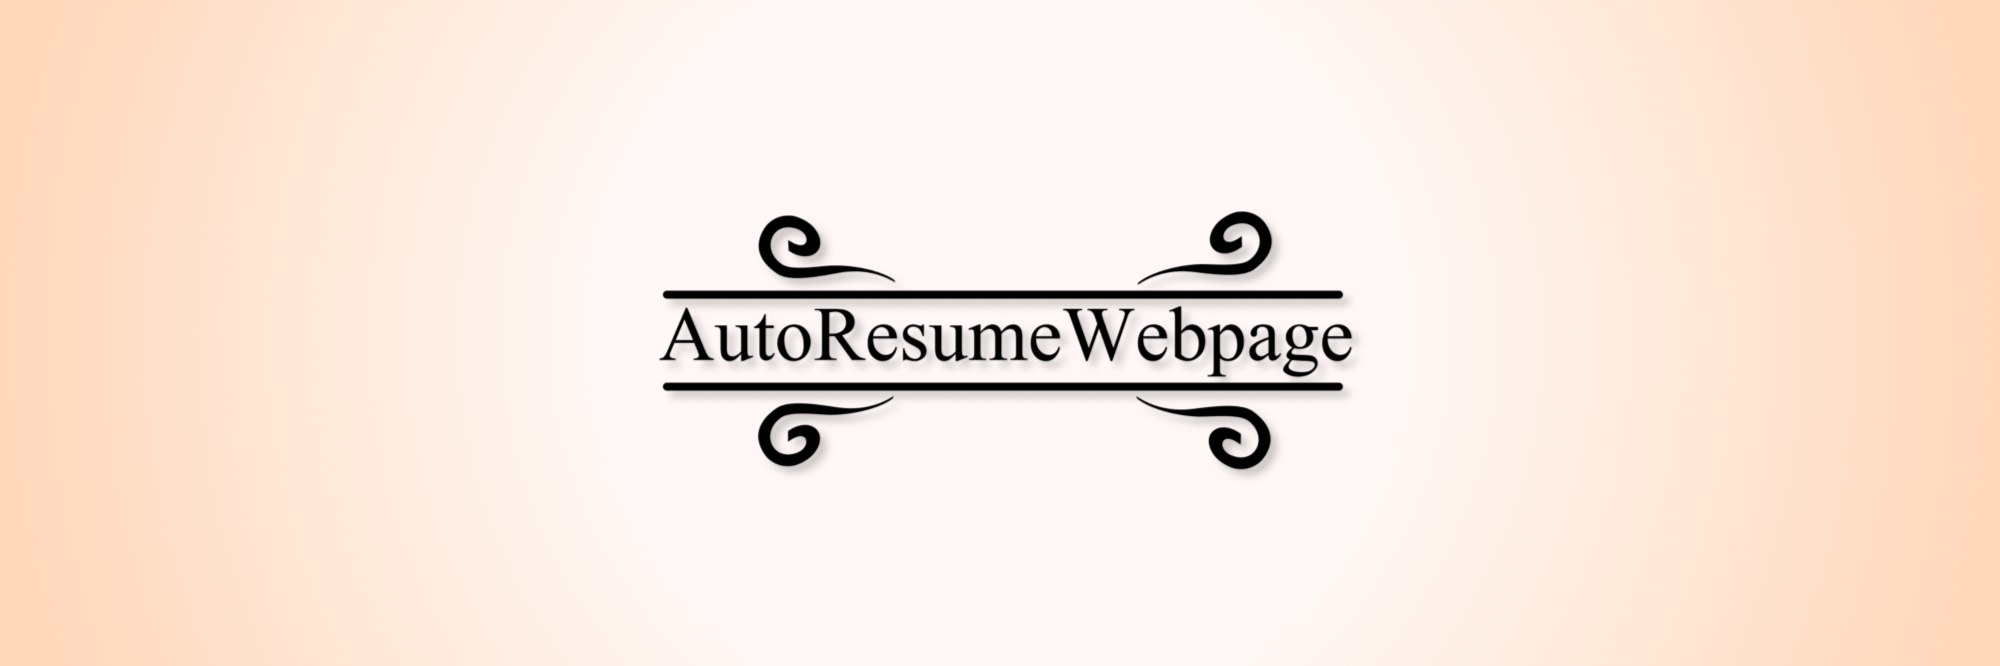 instantly create github pages url for your resume yask instantly create github pages url for your resume yask srivastava medium